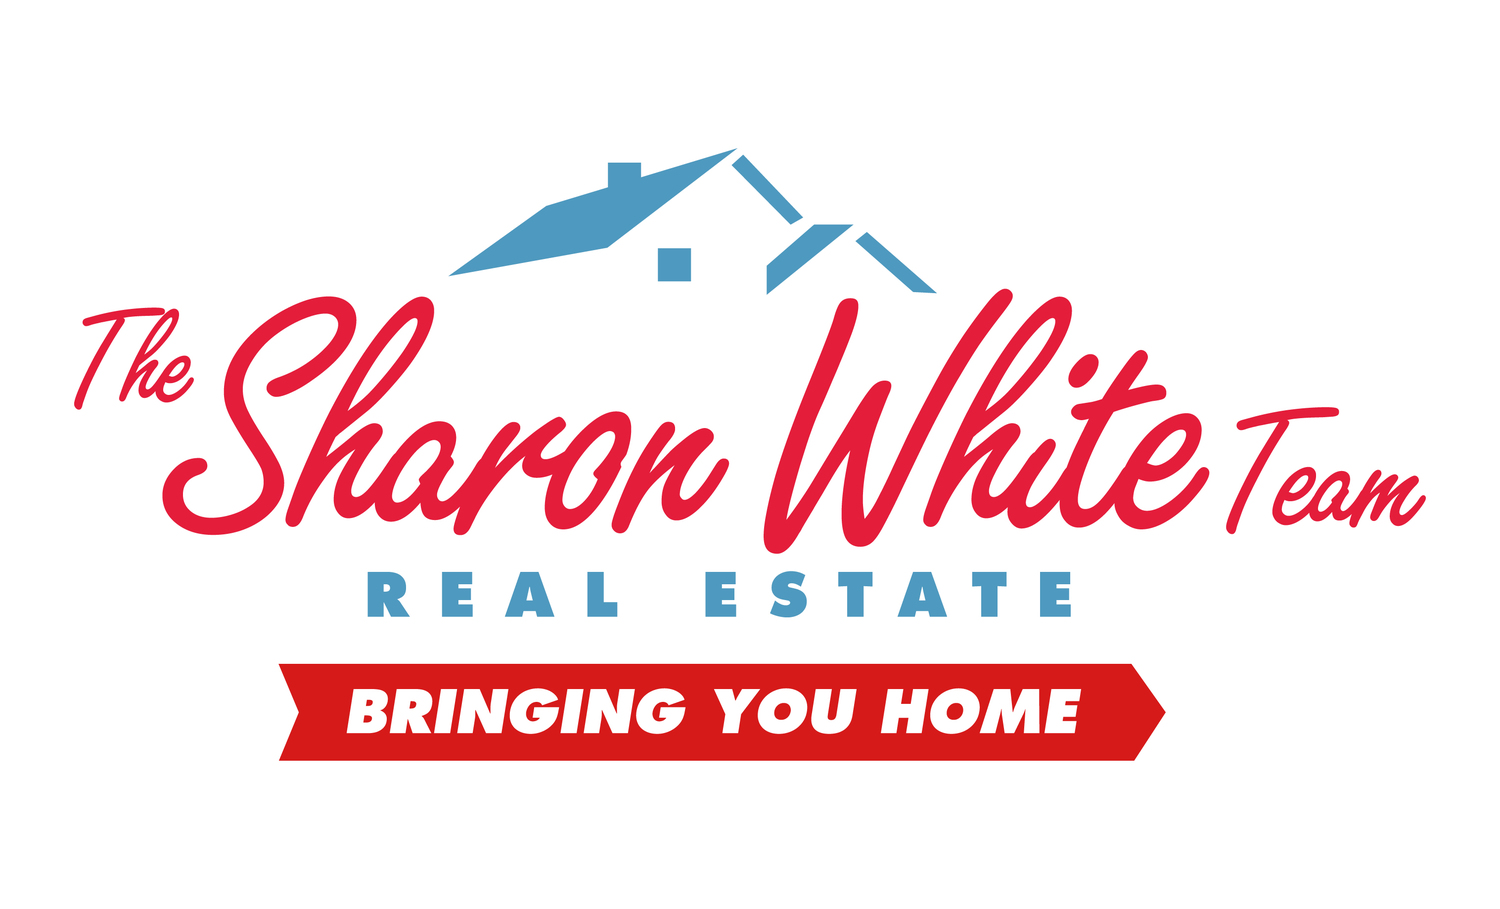 The Sharon White Team